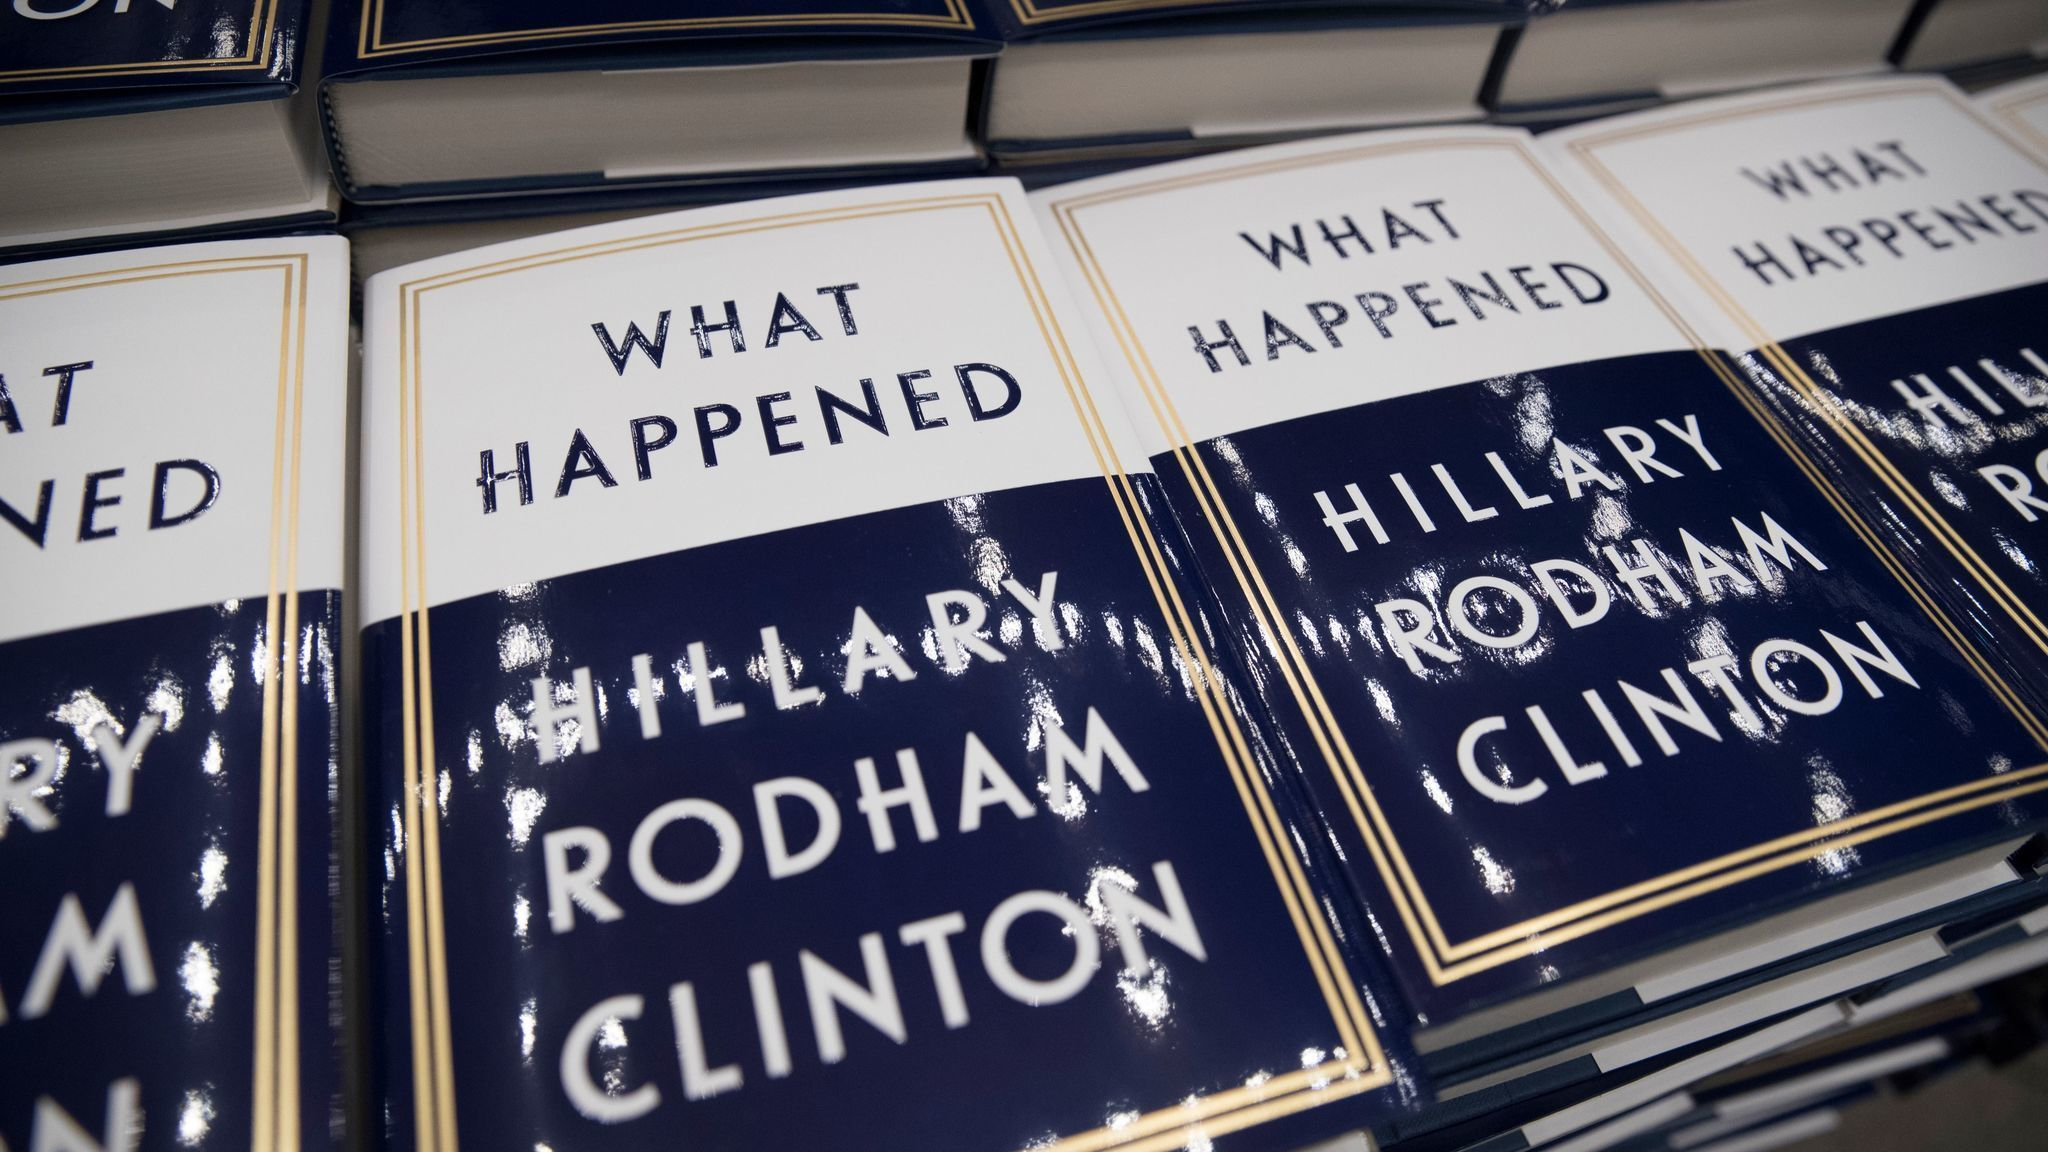 La na pol hillary clinton book what happened 20170920